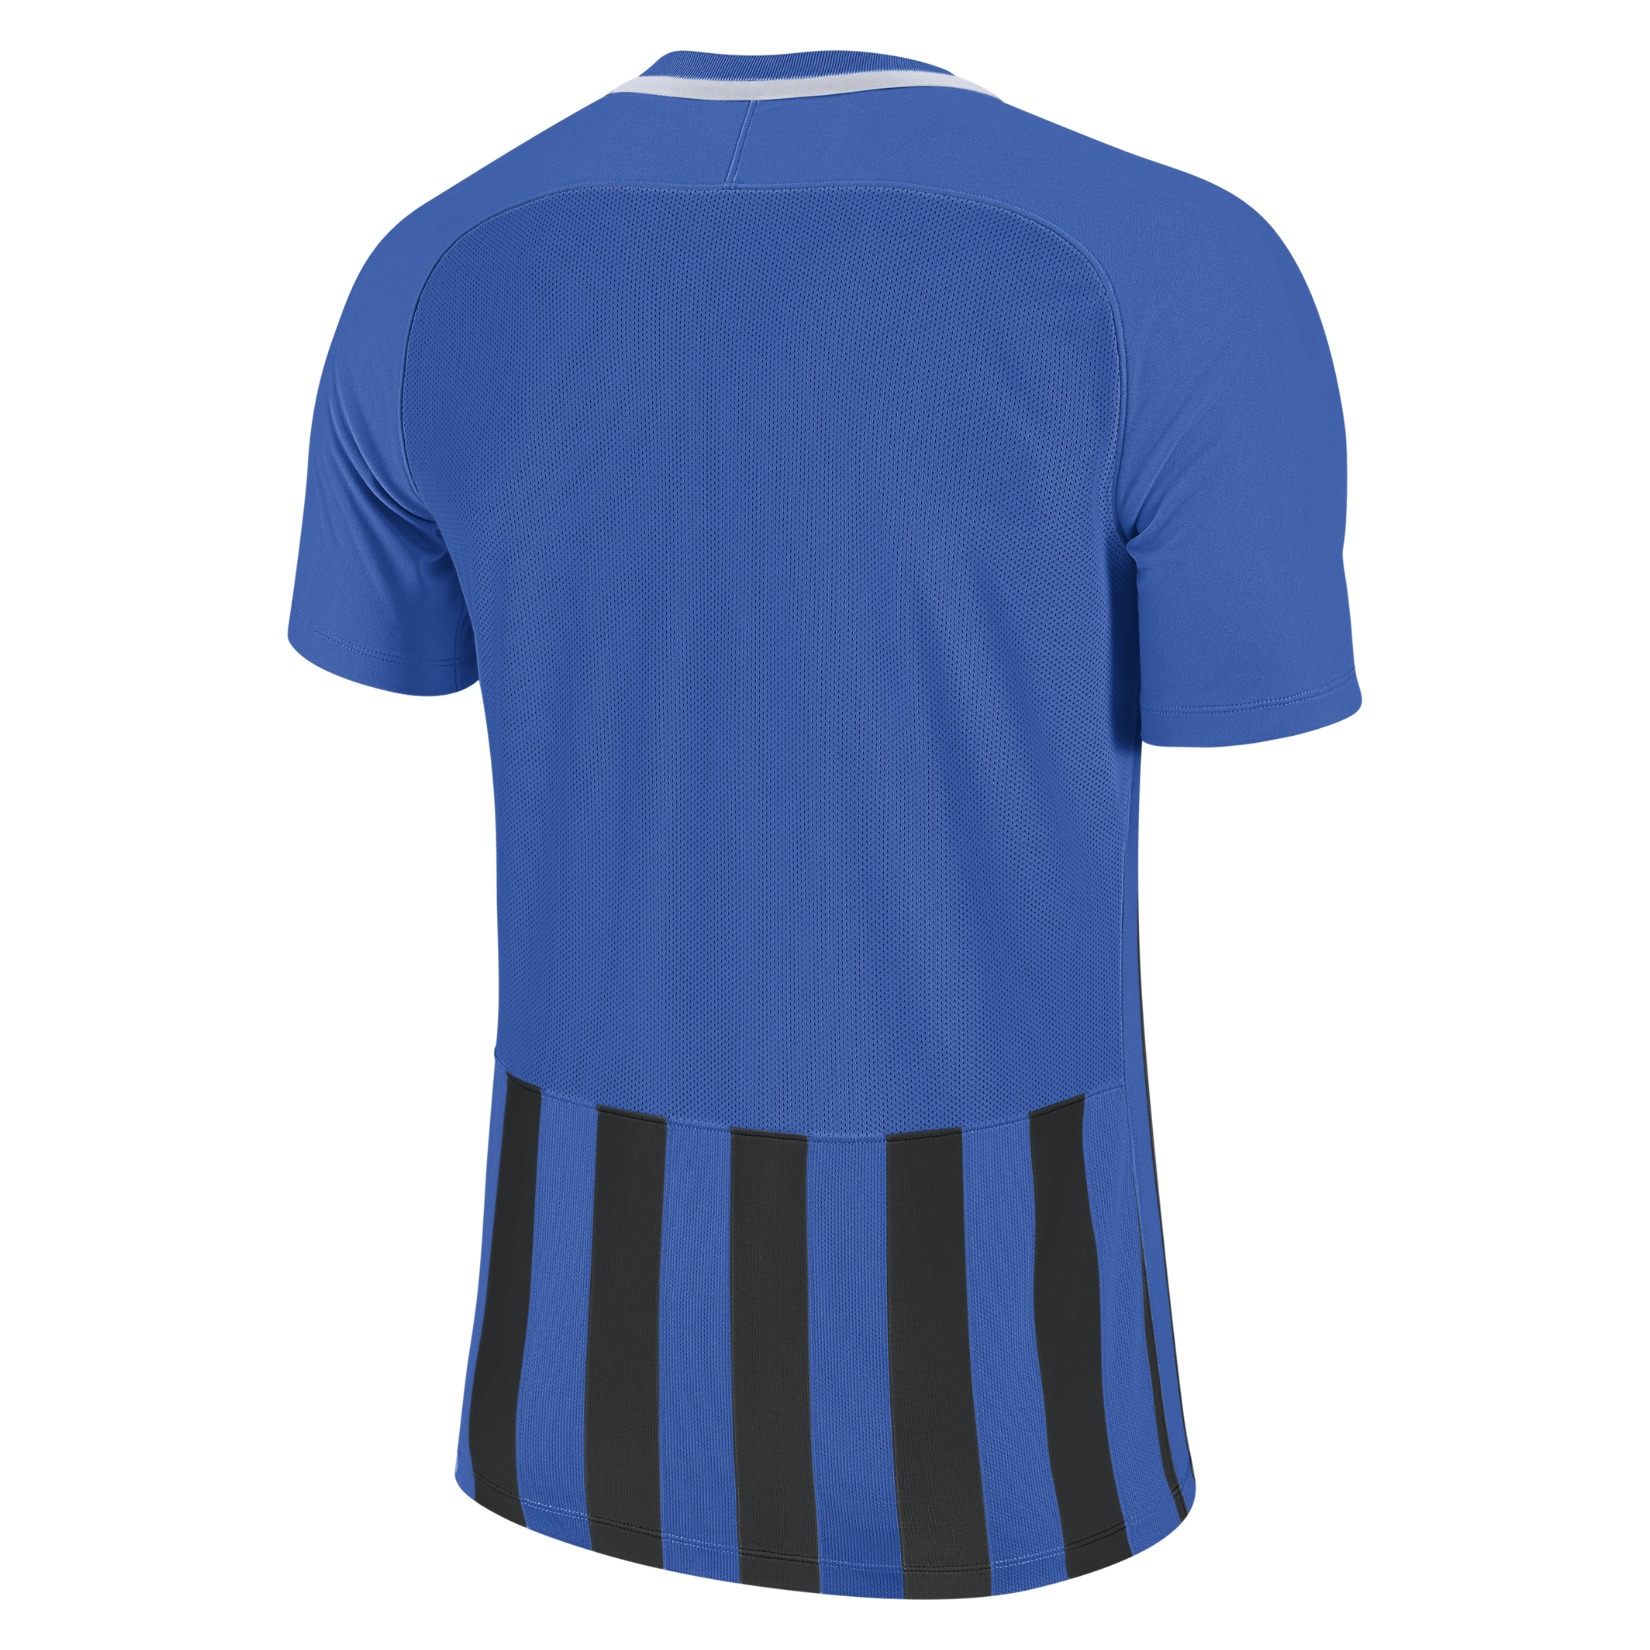 Nike Striped Division III Short Sleeve Shirt Royal Blue-Black-White-White